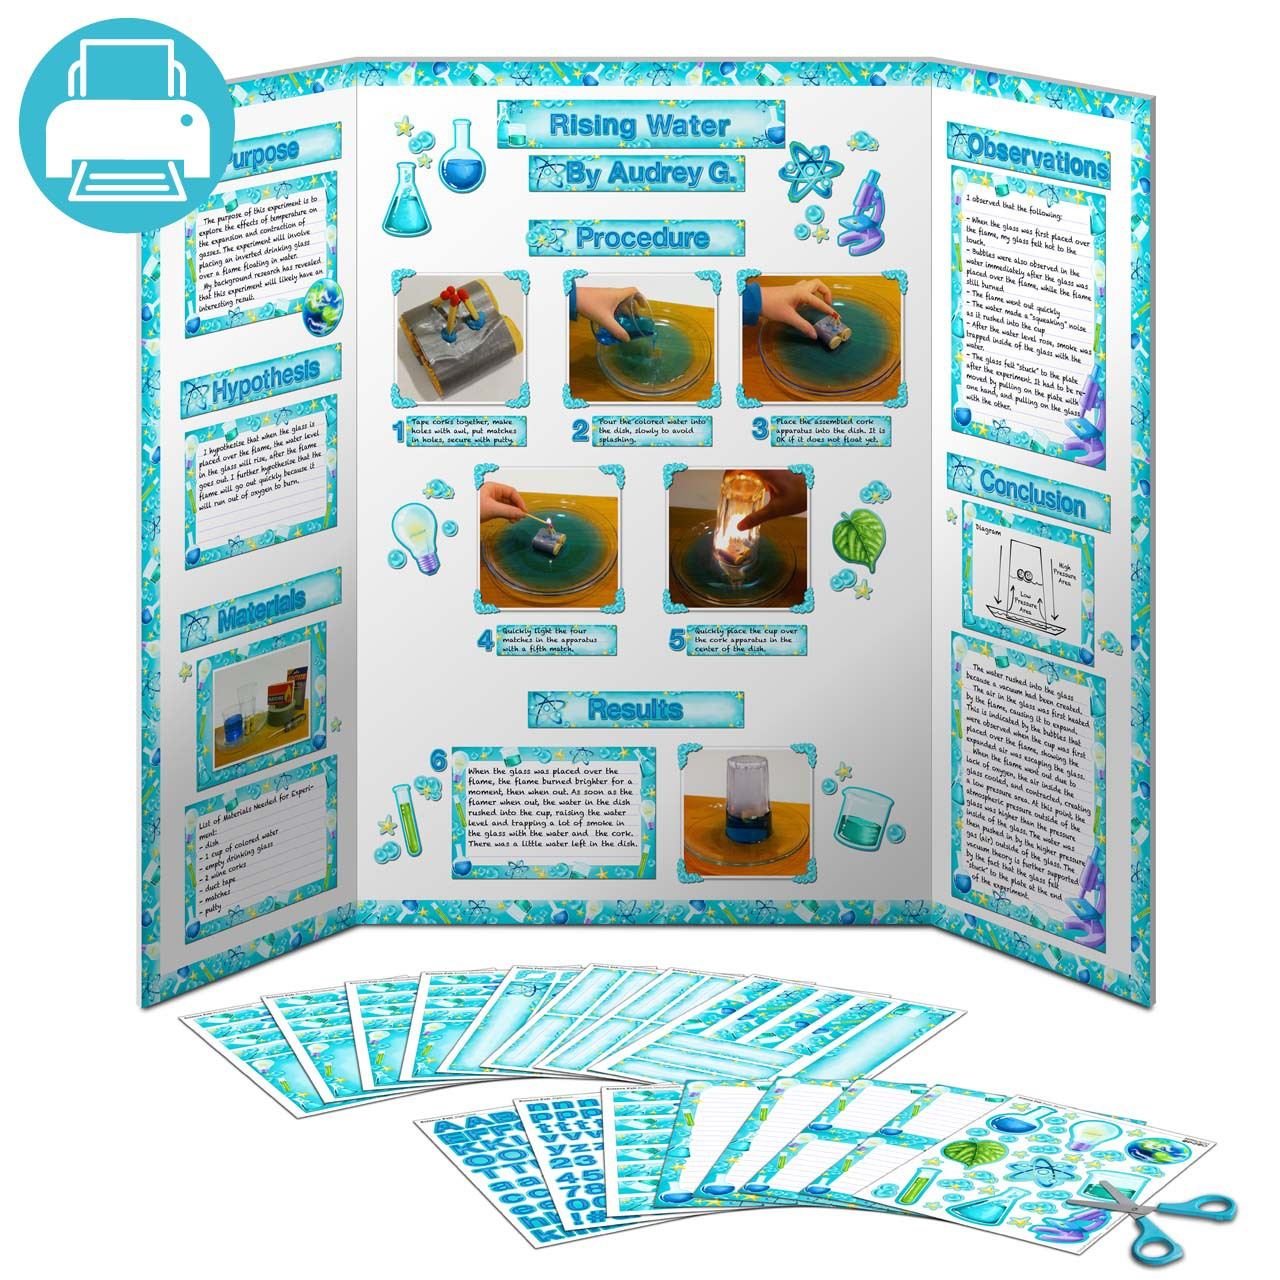 Display clipart project Display science clipart Science Fair